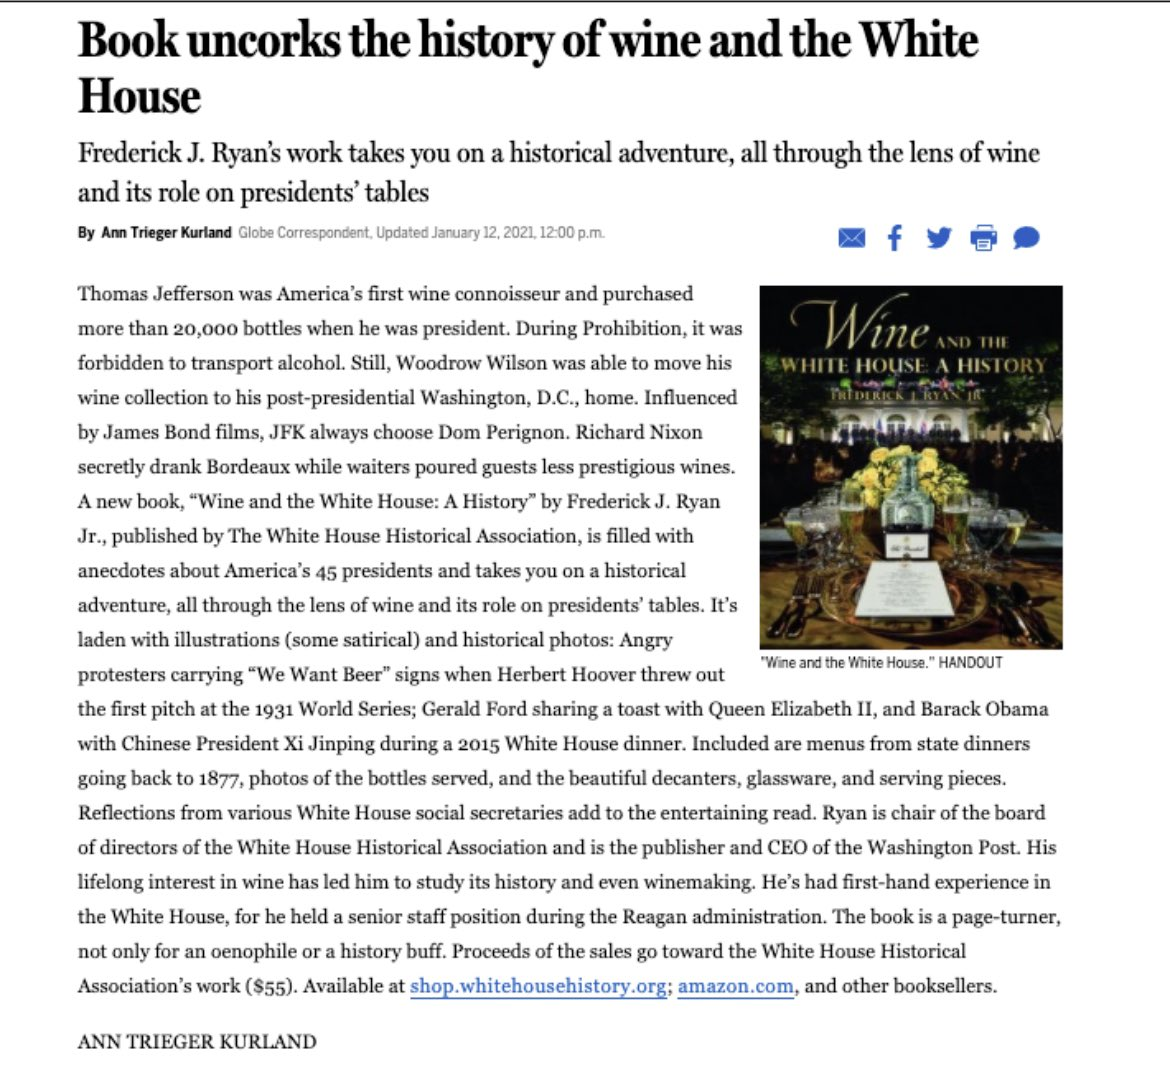 """Thank you Ann Trieger Kurland for this terrific @BostonGlobe feature today on our @WhiteHouseHstry book """"Wine and the White House: a History""""! This book and a nice bottle would pair well for the perfect #ValentinesDay present!"""